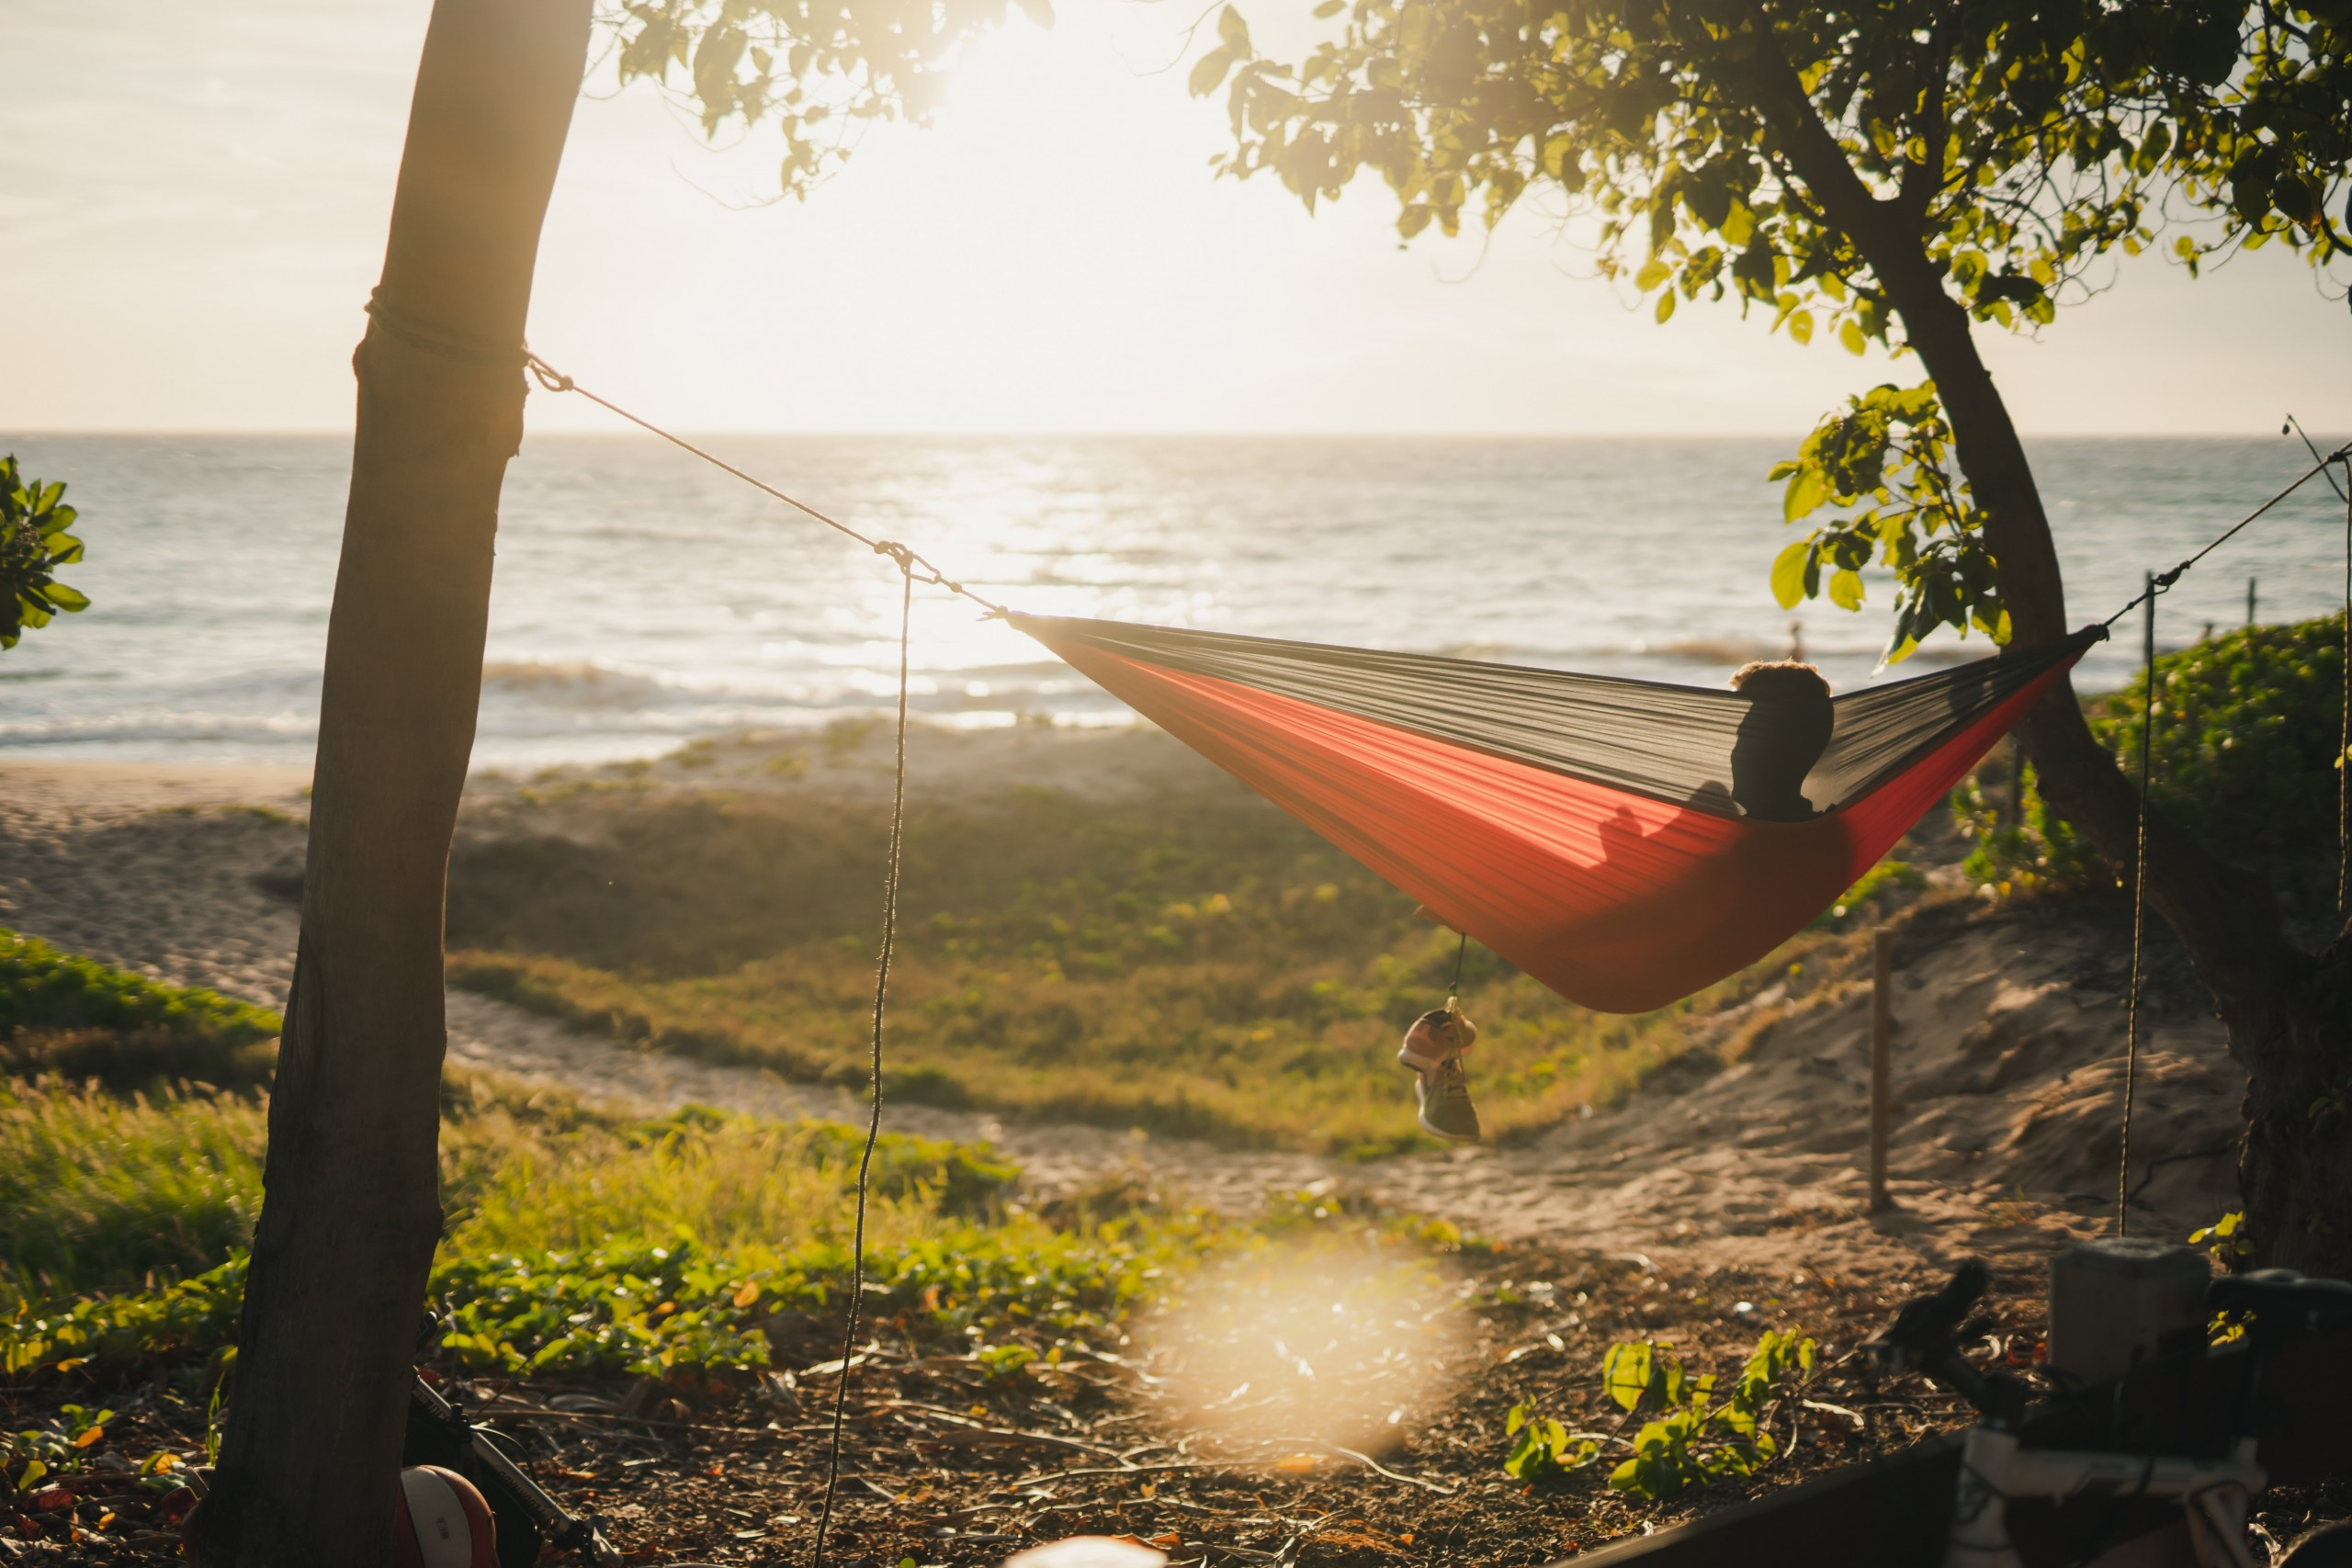 Person in Hammock facing Sunset over Water.